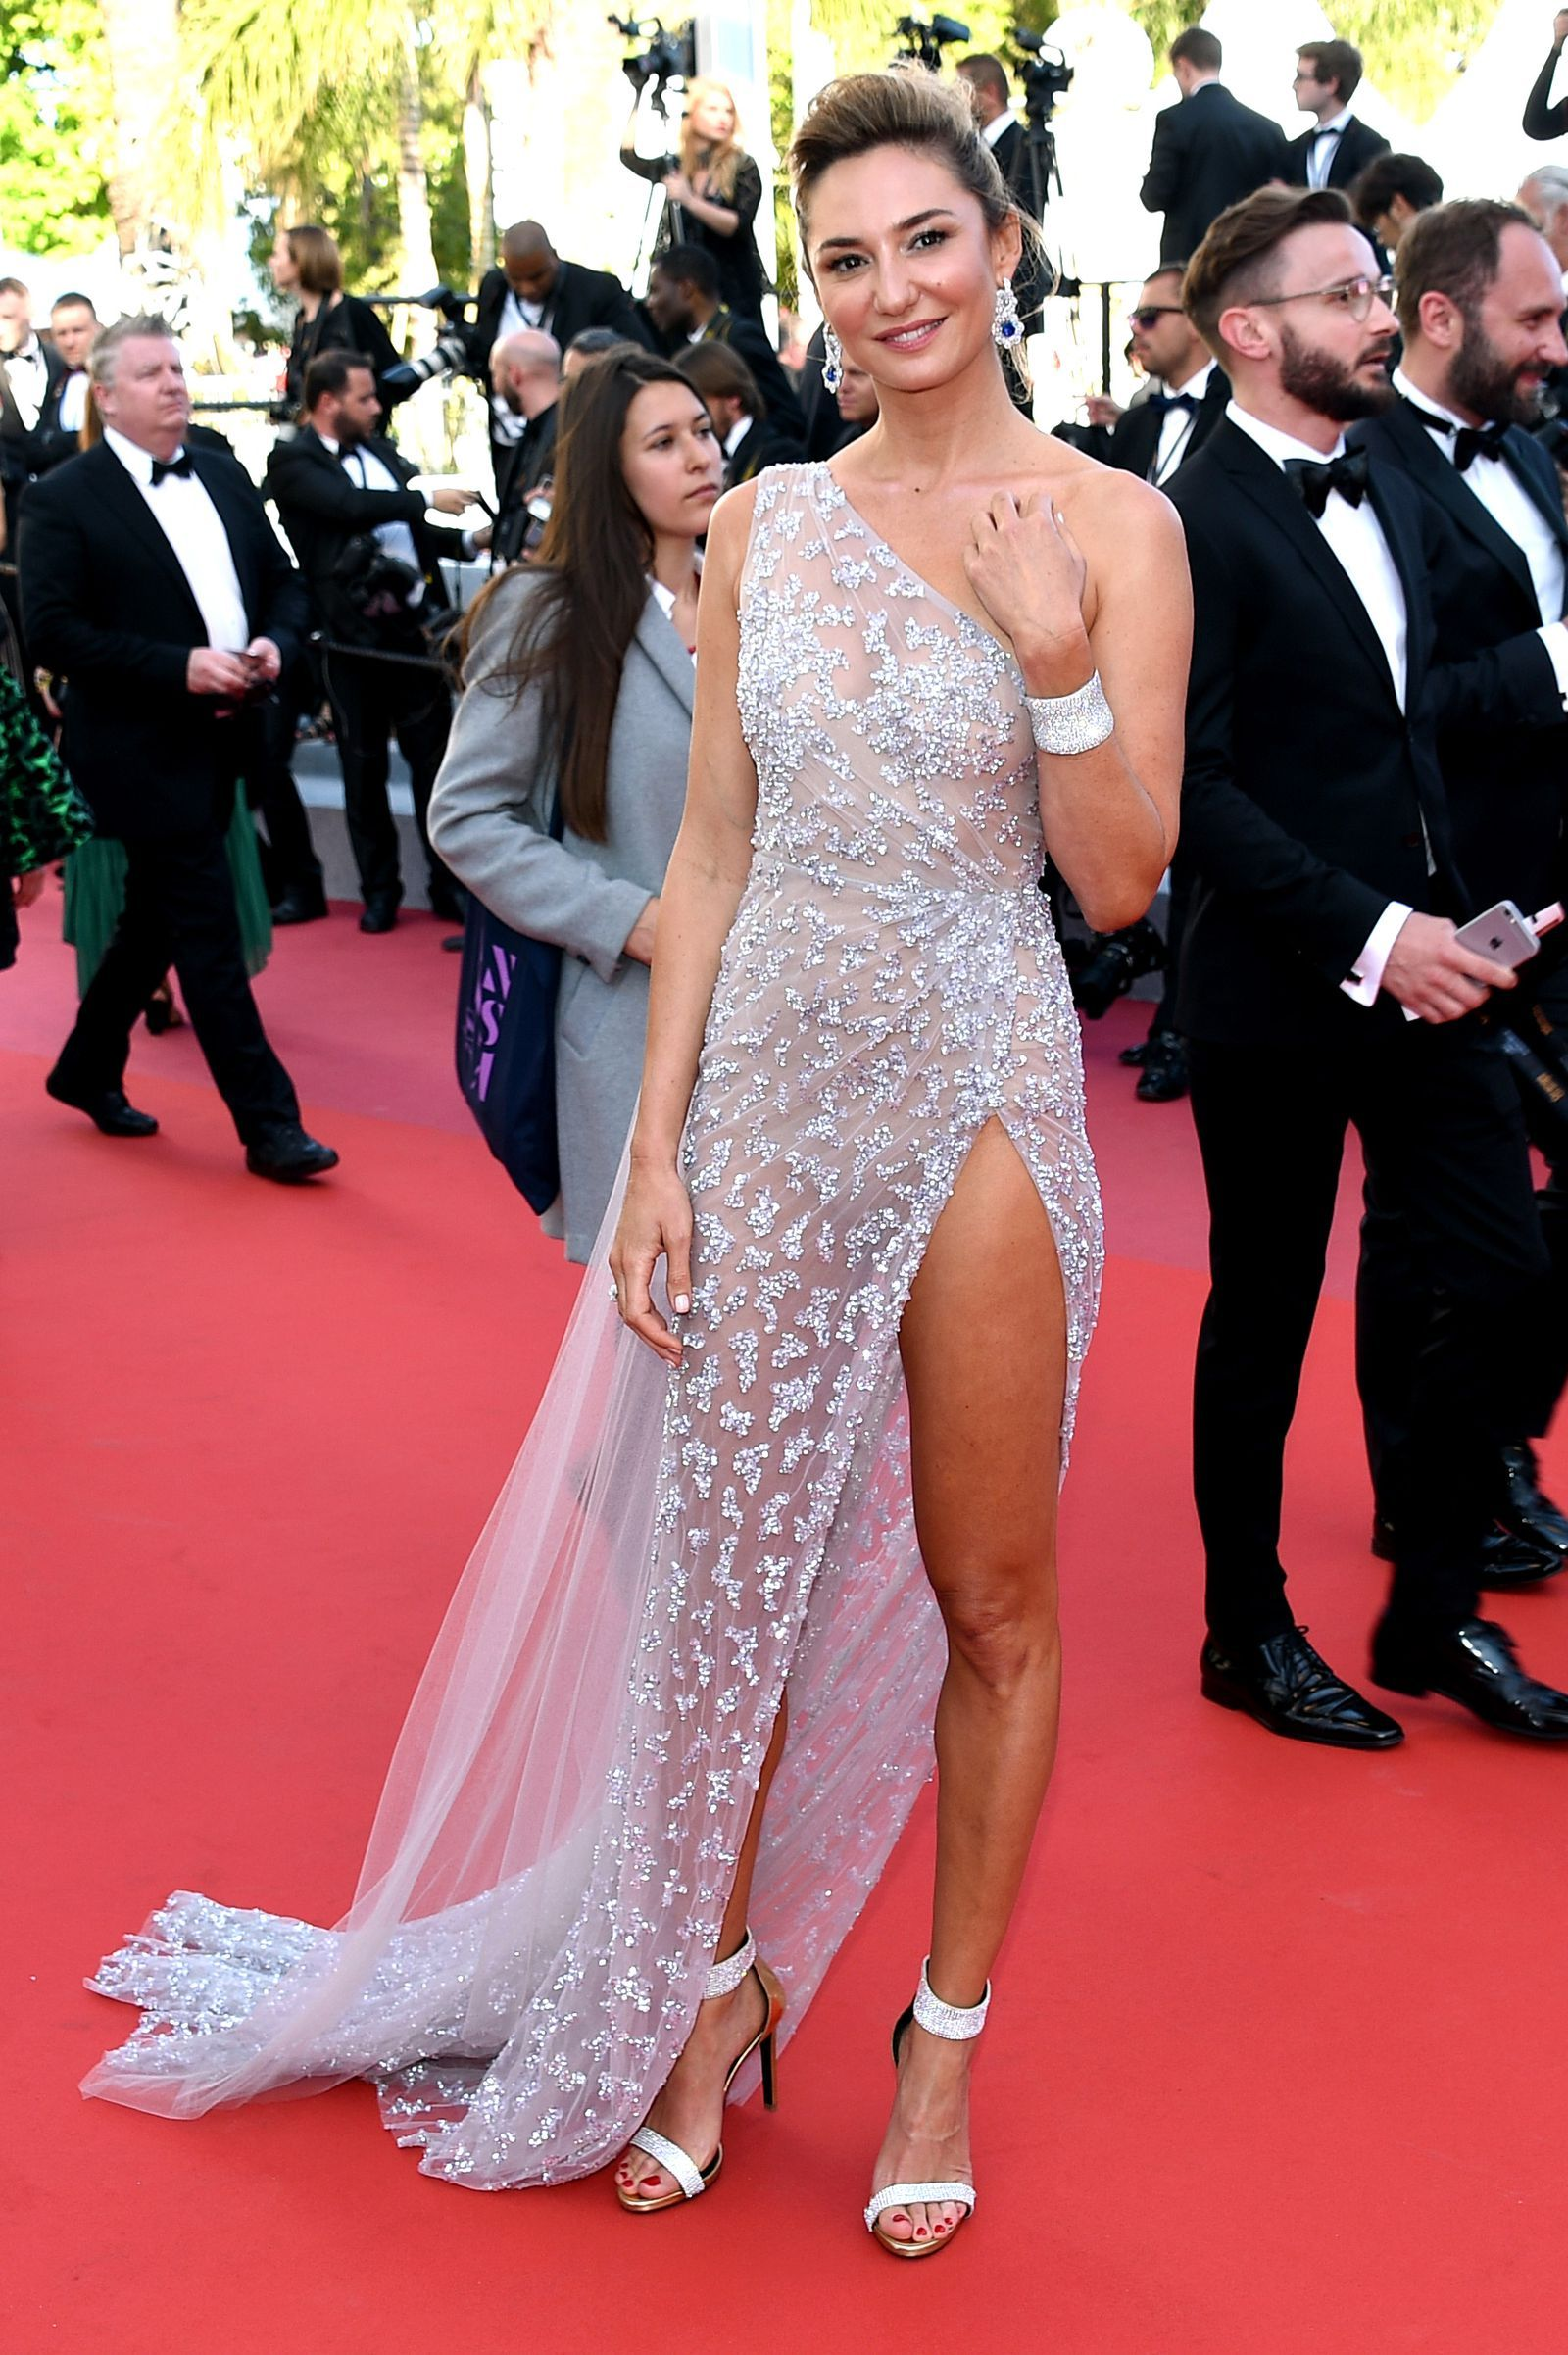 dc9501bbd1d6 The Best Red Carpet Looks From the 2018 Cannes Film Festival ...